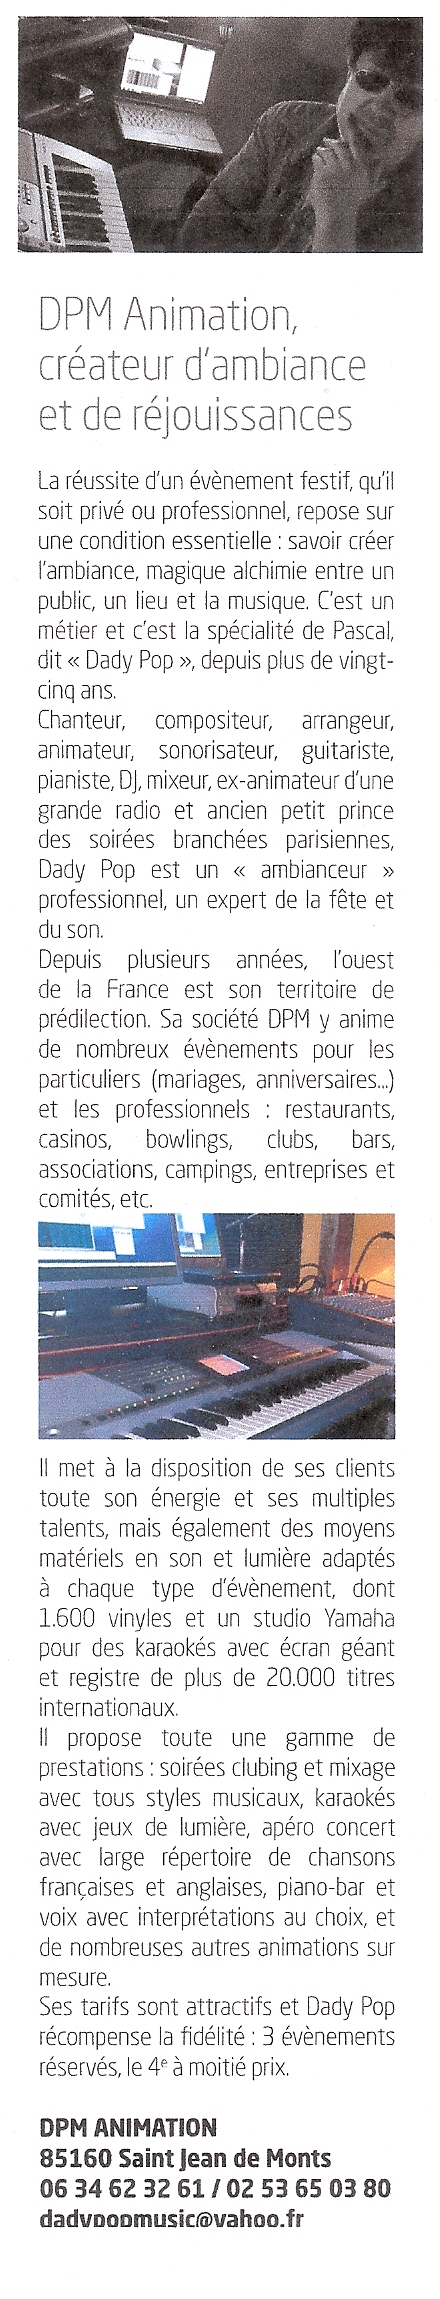 extrait article filon mag'